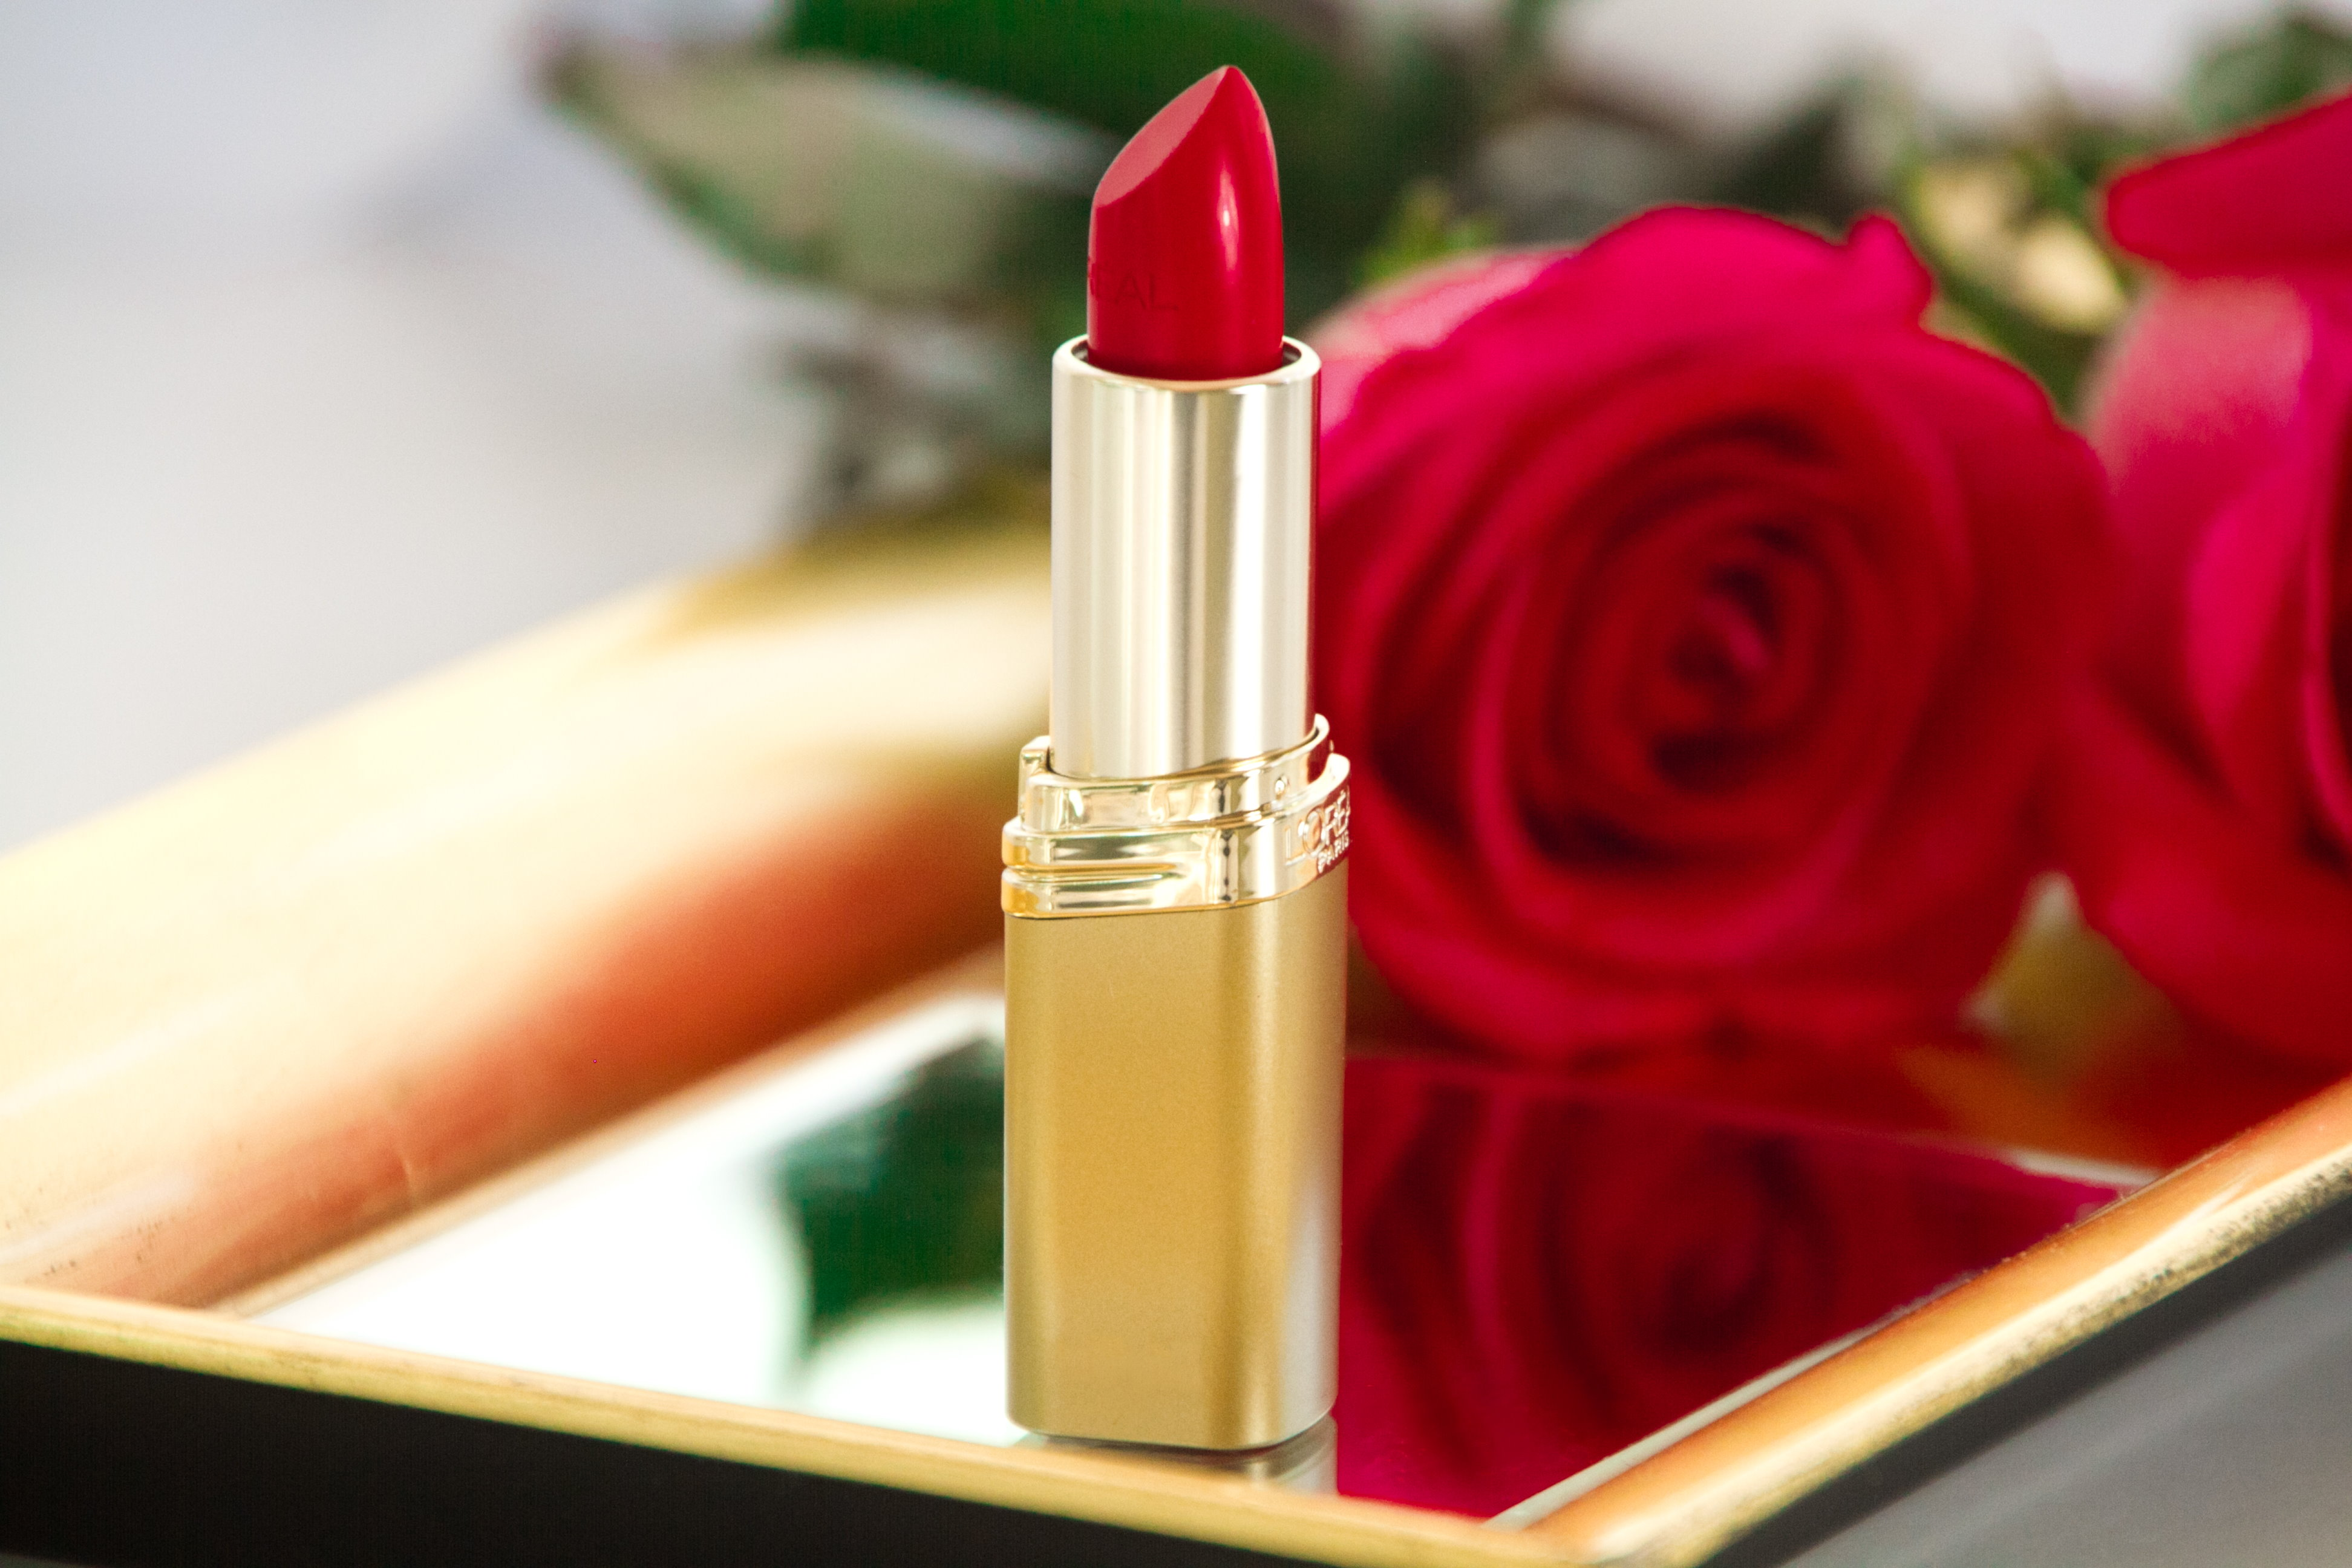 MAKE-UP LIPS AND ROSES__GLAM__2373.